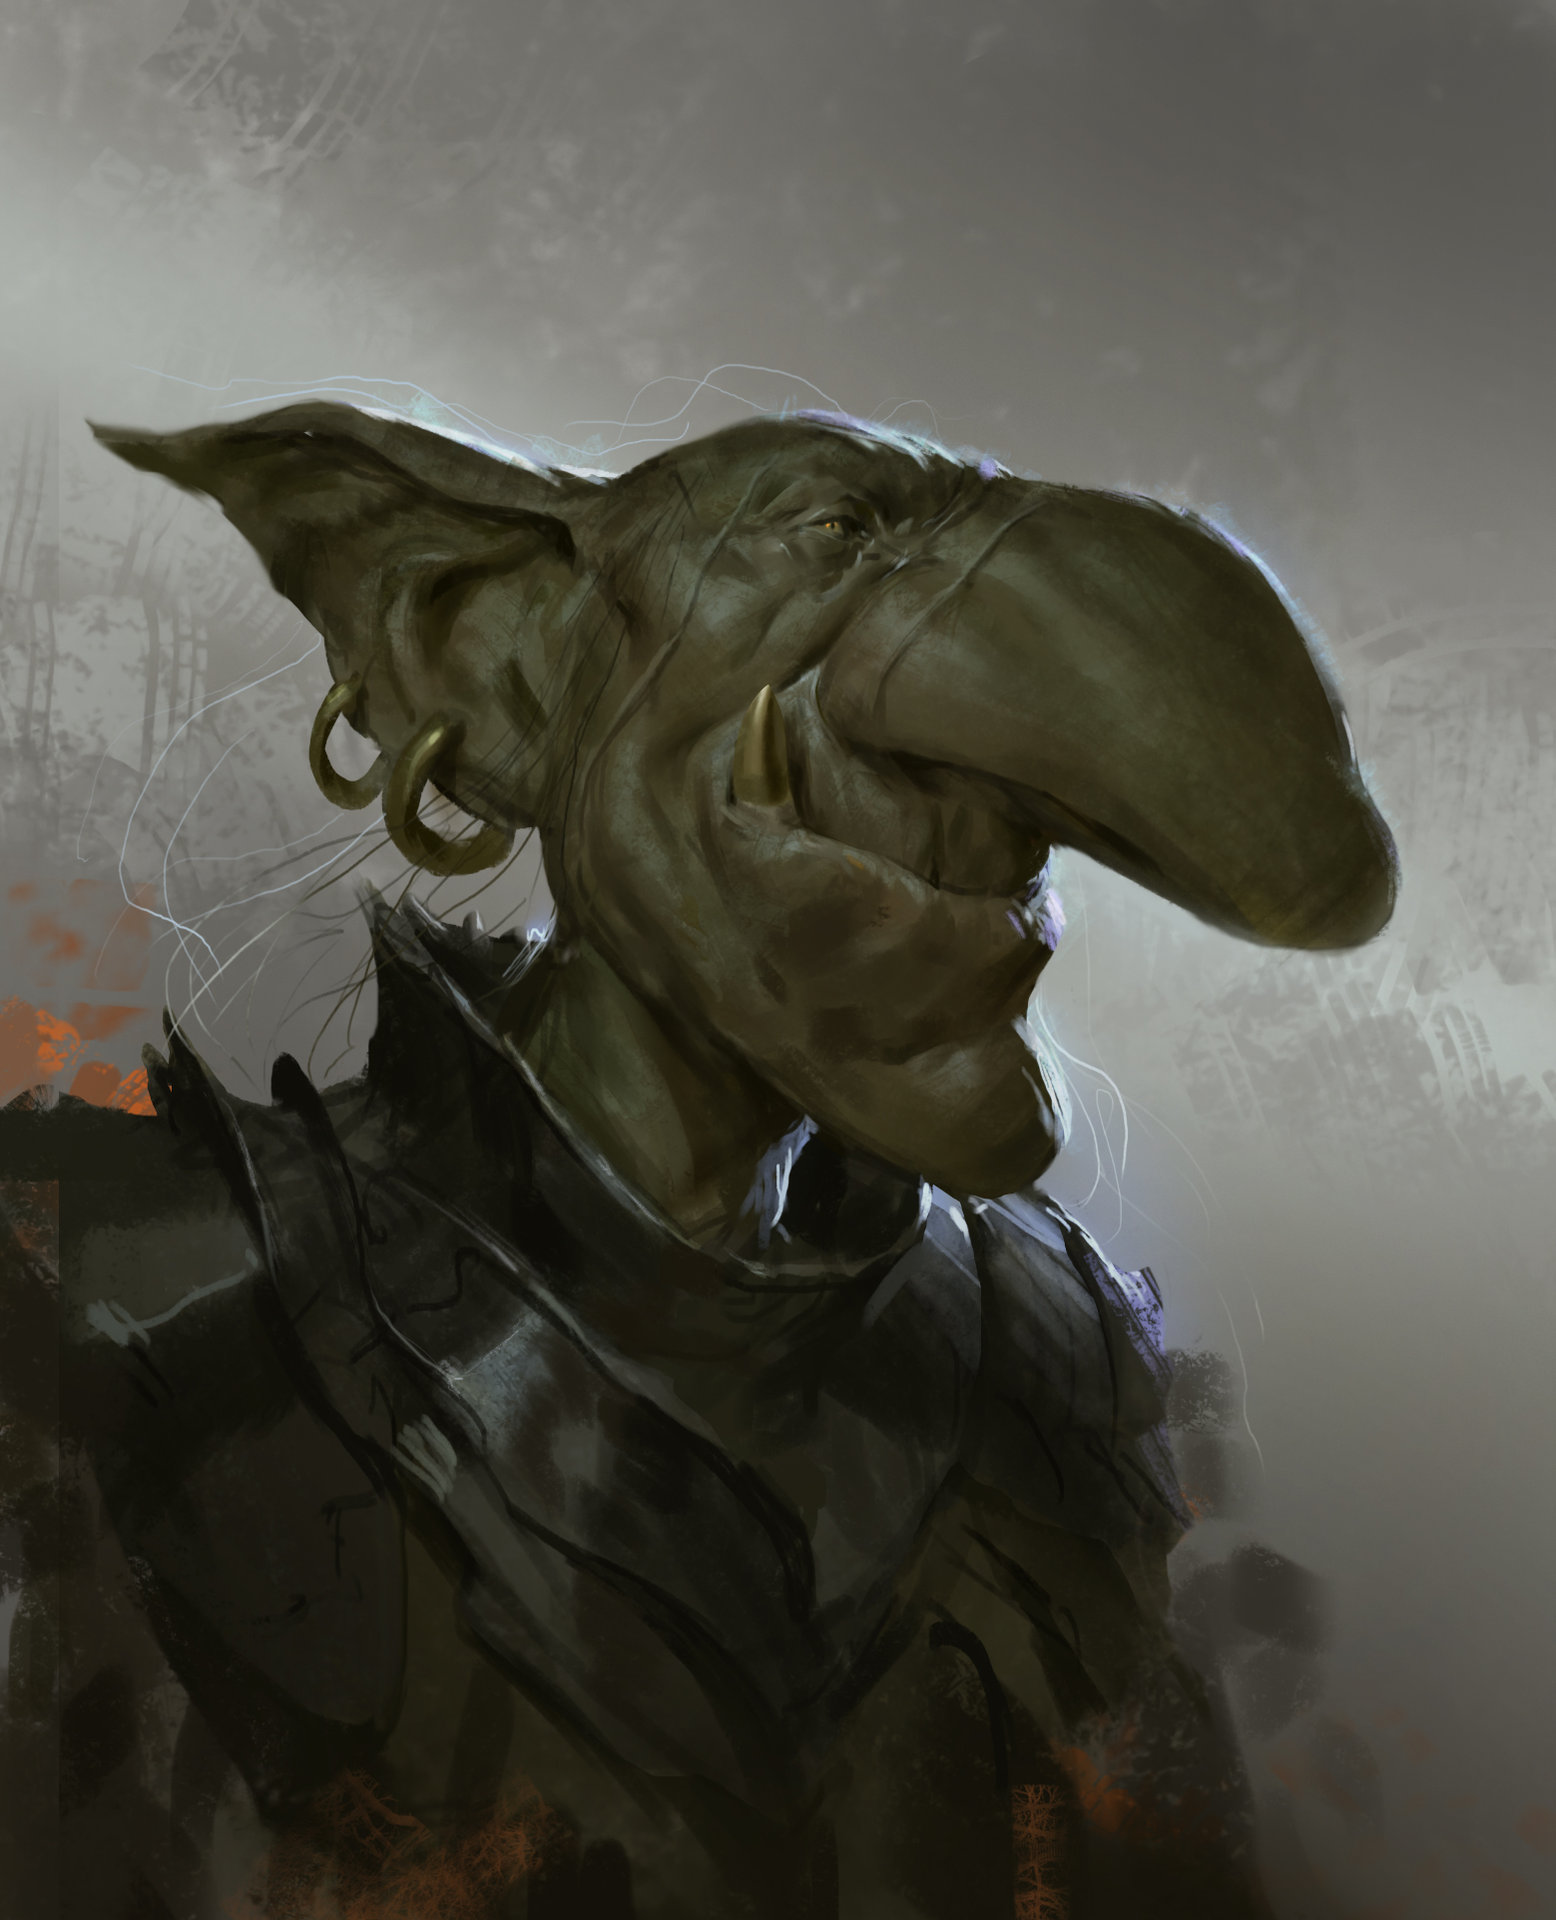 Even amundsen goblin